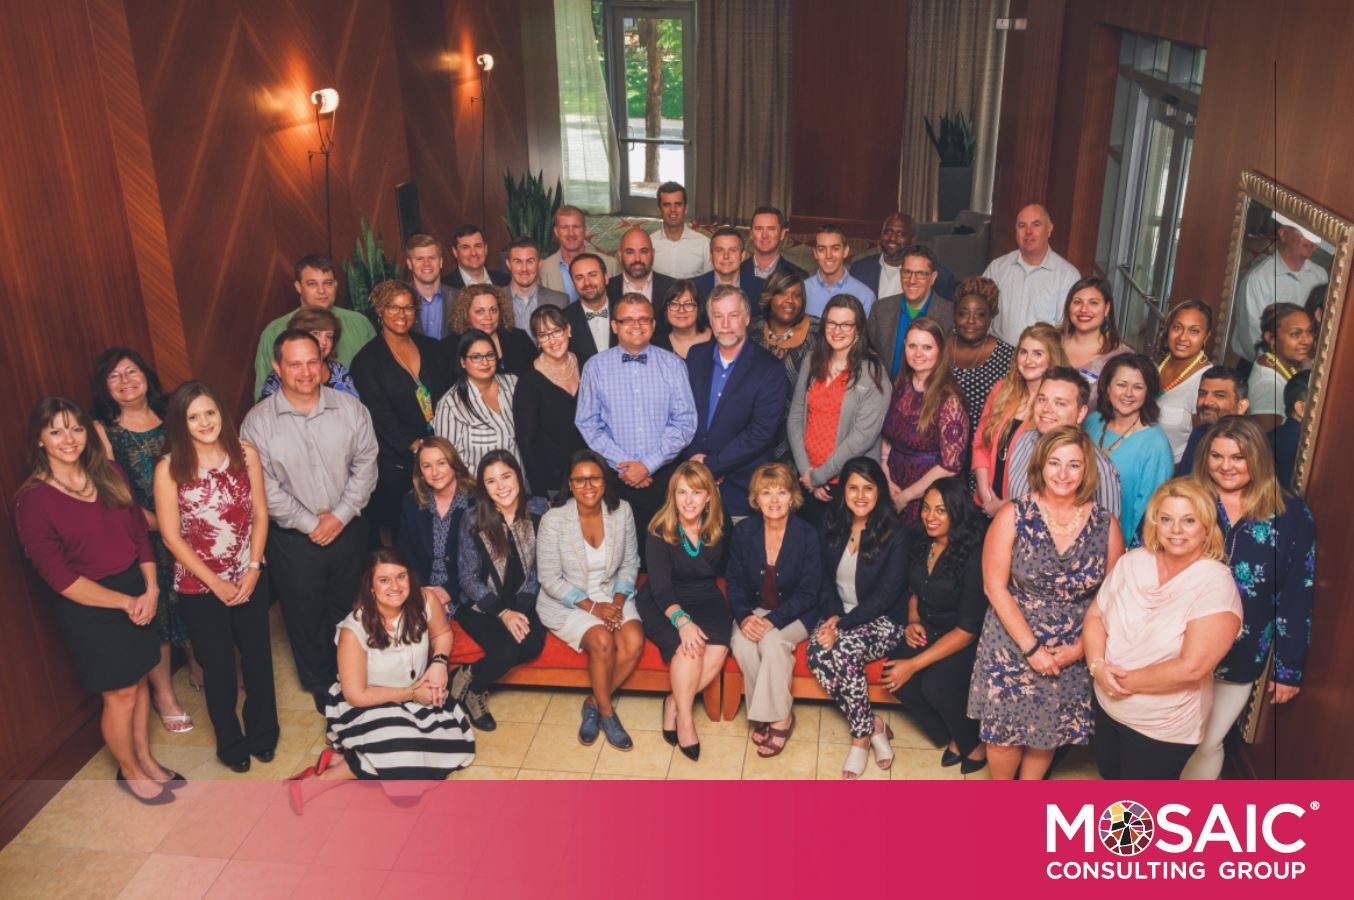 Vicki Hill | Mosaic Consulting Group